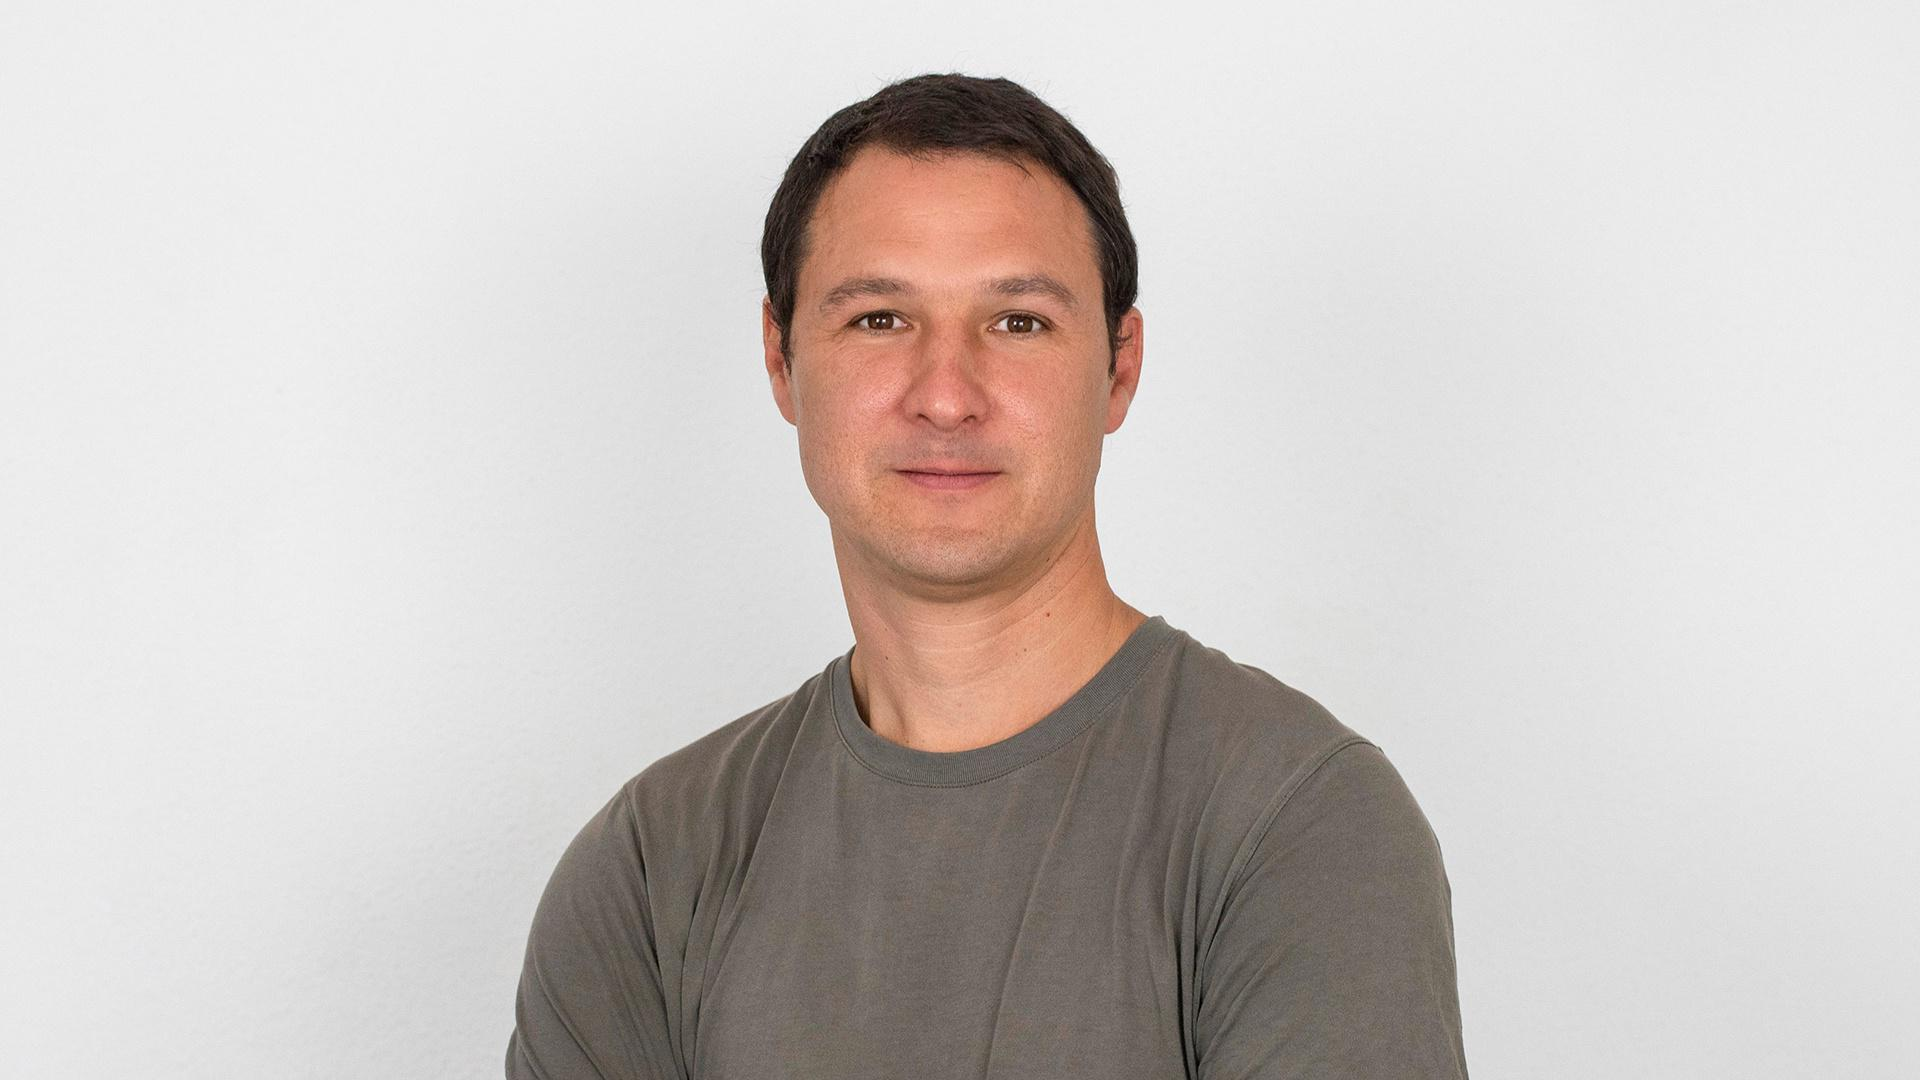 Pictured is Jed McCaleb, an early cryptocurrency pioneer who has become a billionaire as XRP has soared.